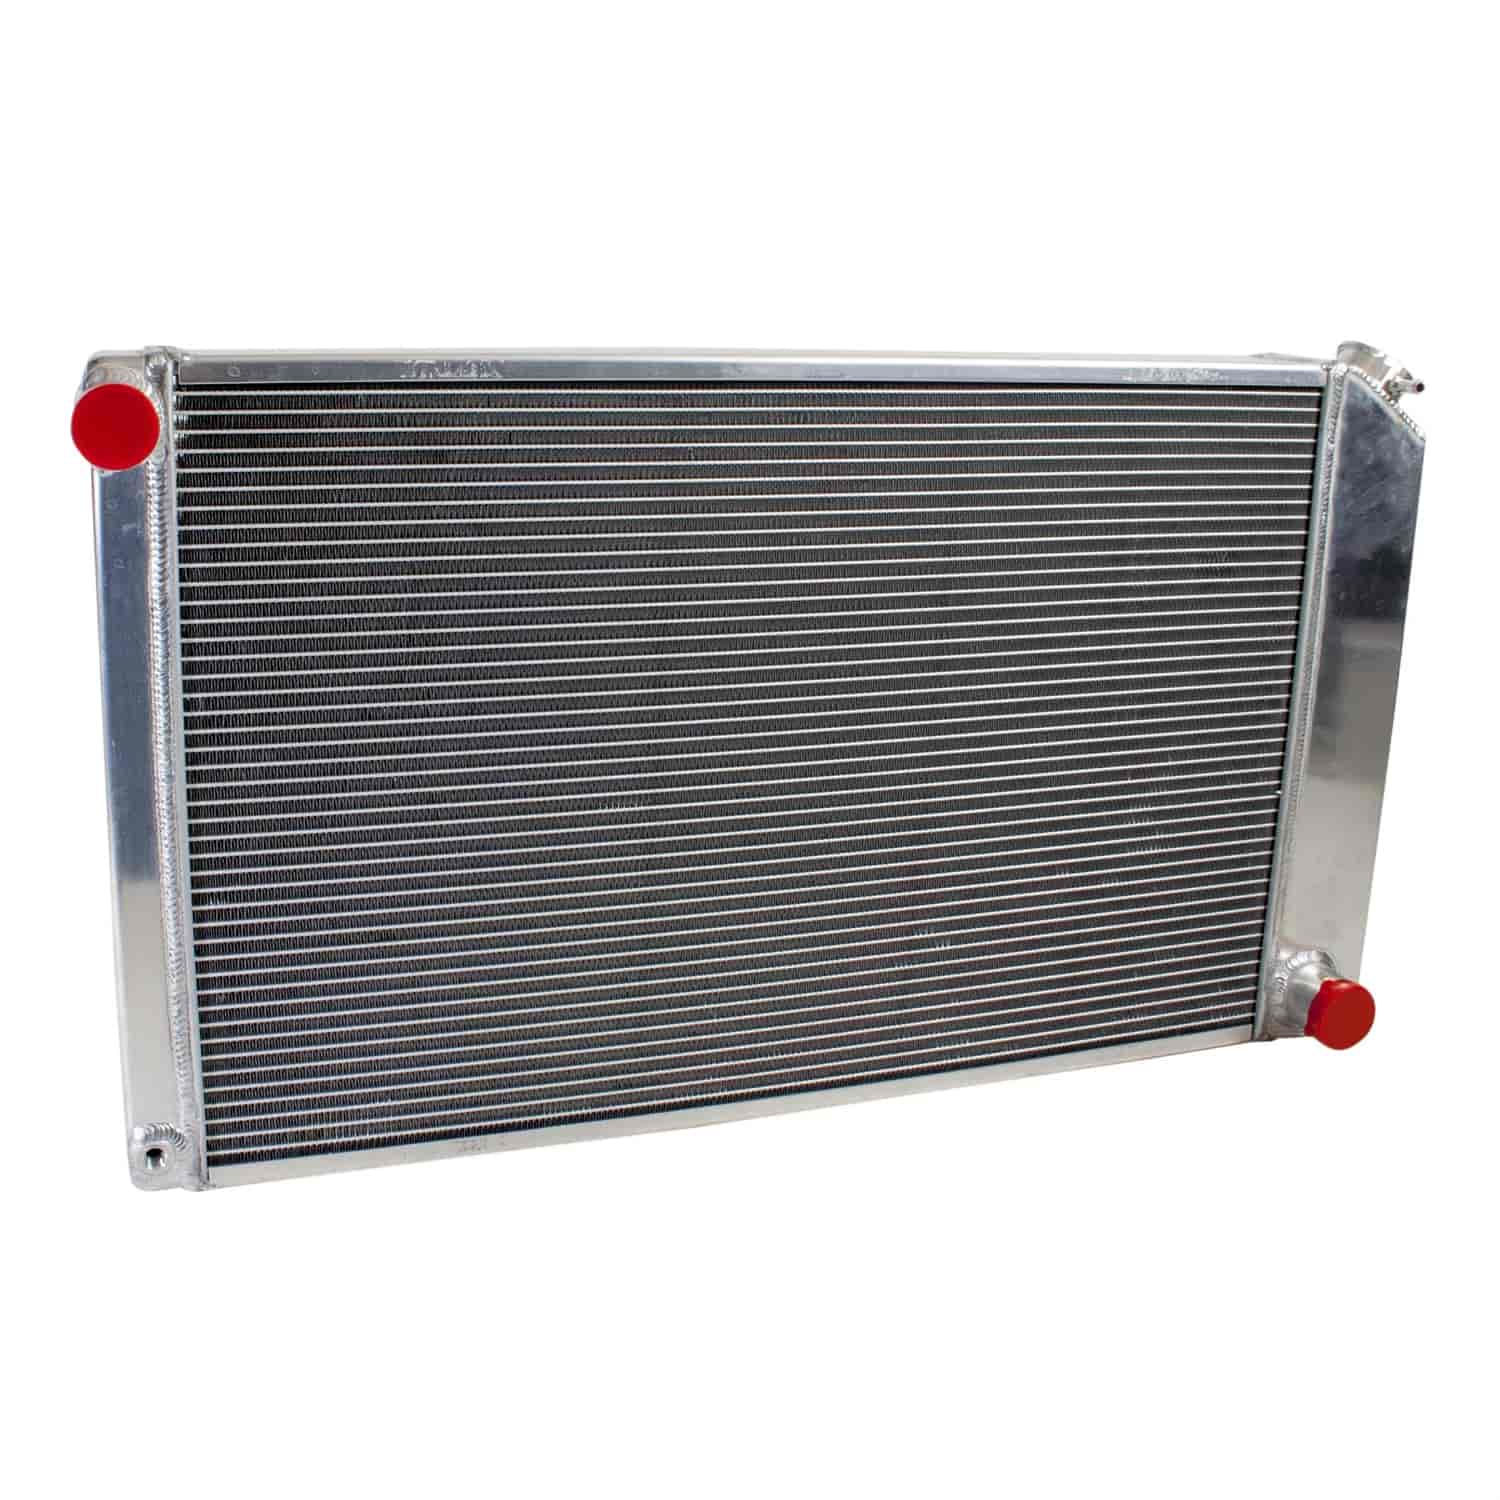 Griffin Radiators 8-00008